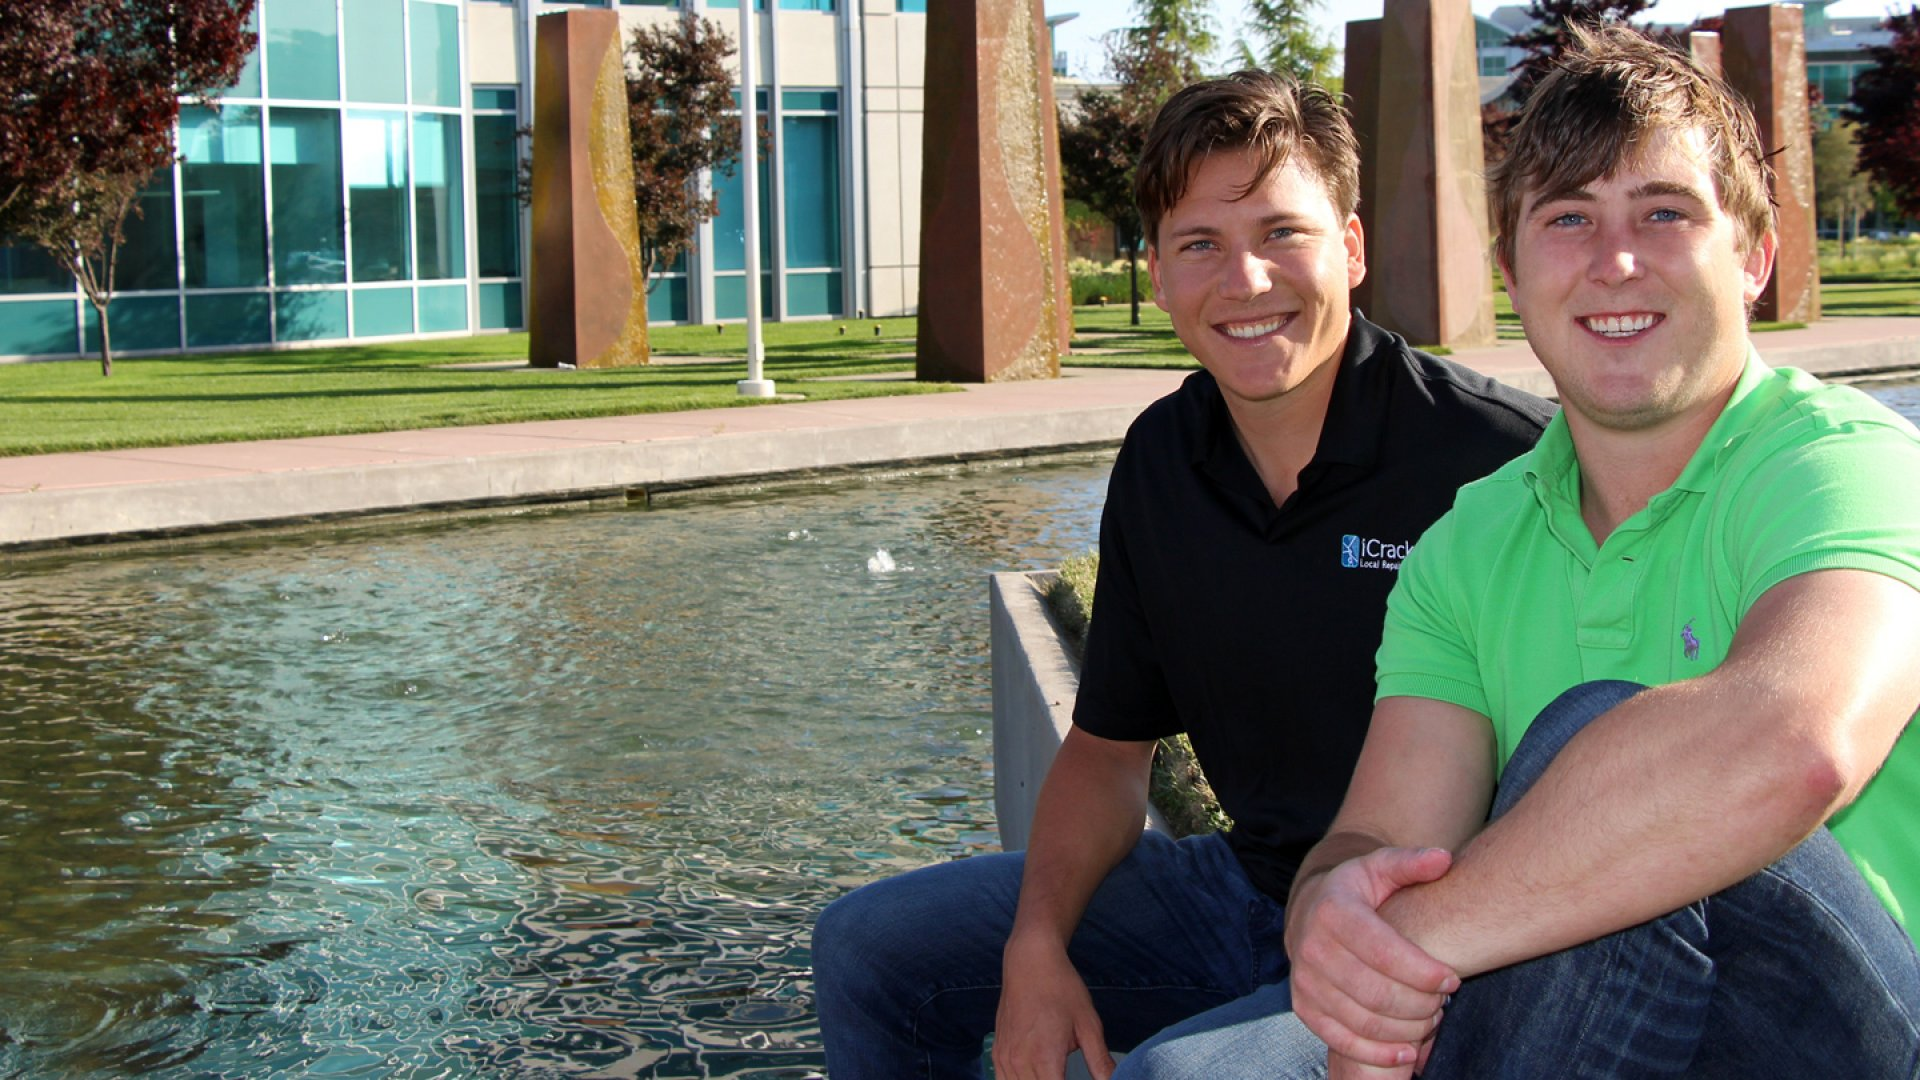 iCracked founders Anthony Martin (left) and A.J. Forsythe.